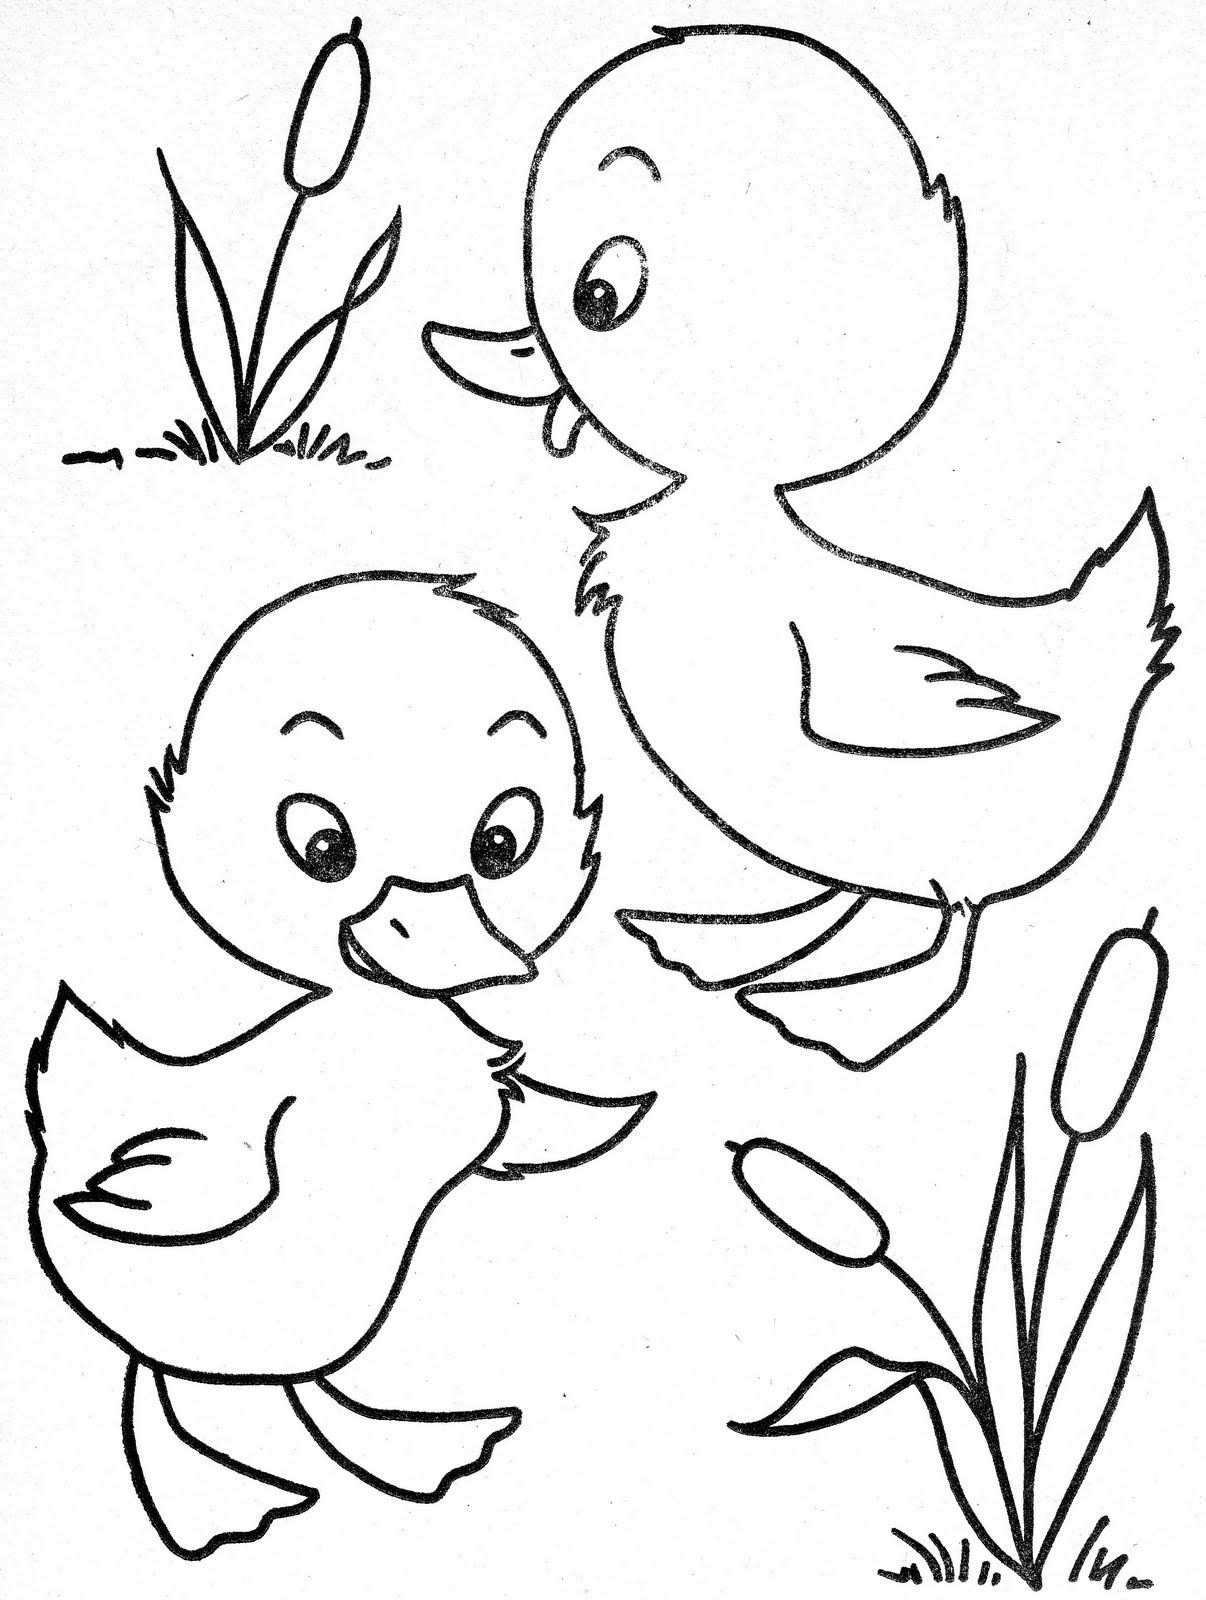 ducks coloring pages - photo#45